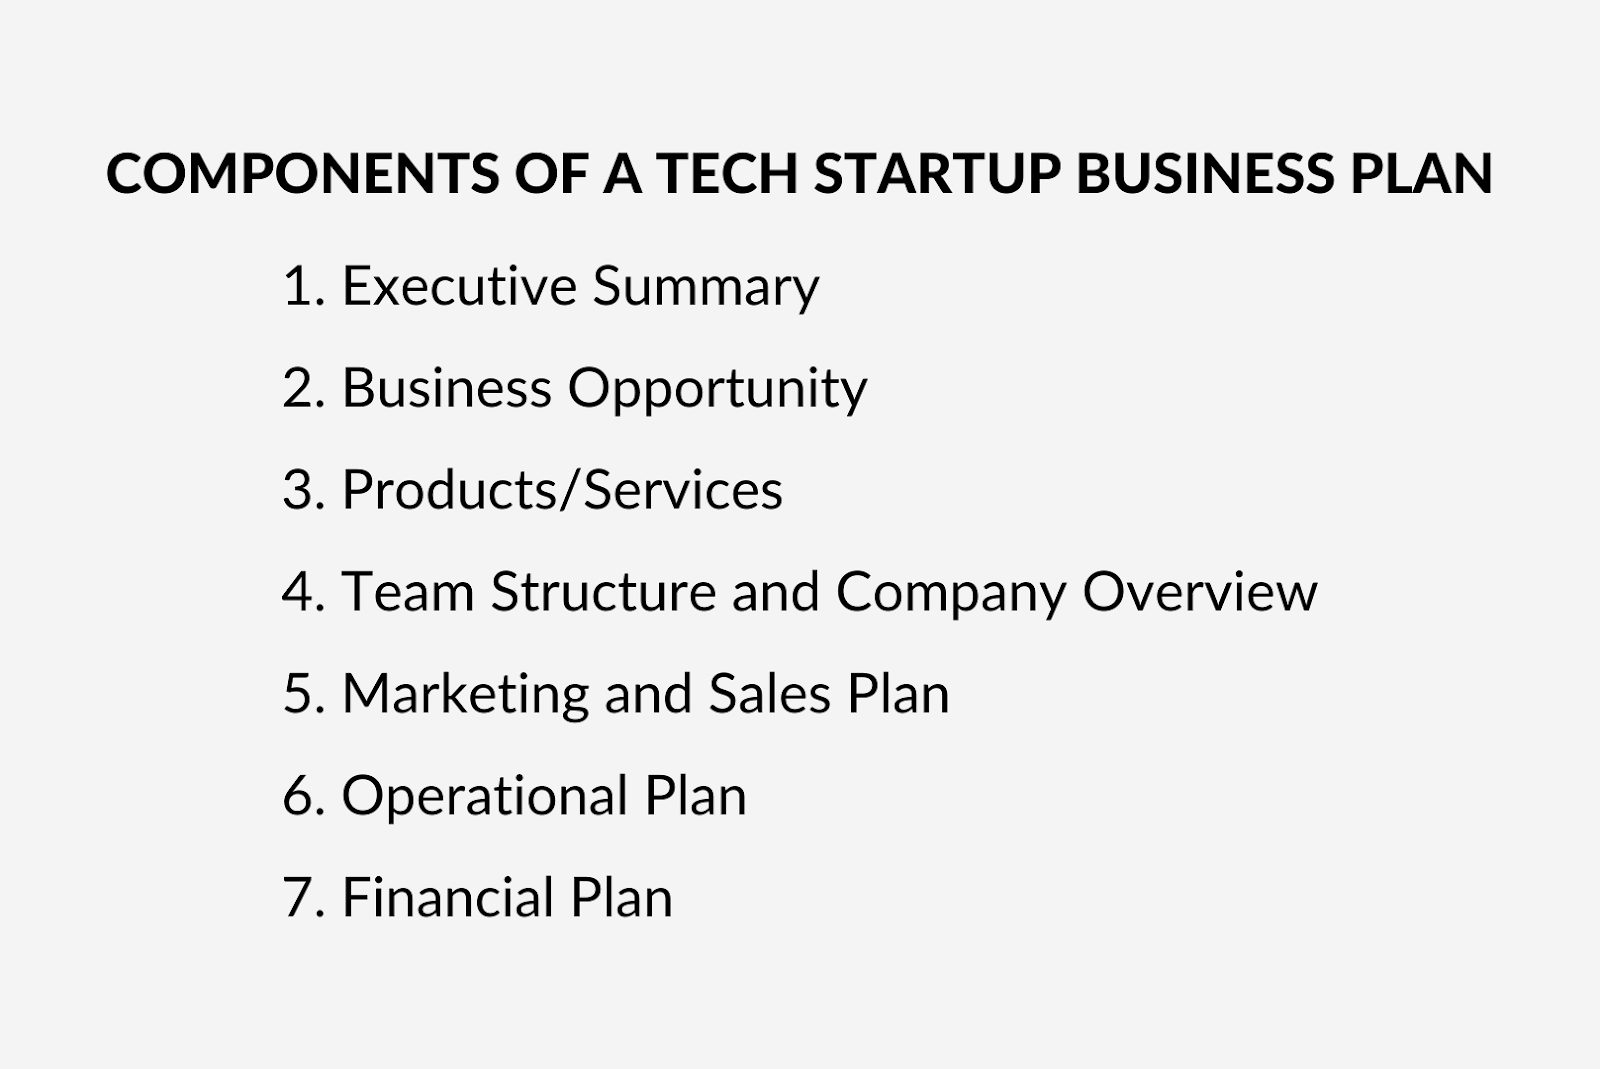 Components of a tech startup business plan